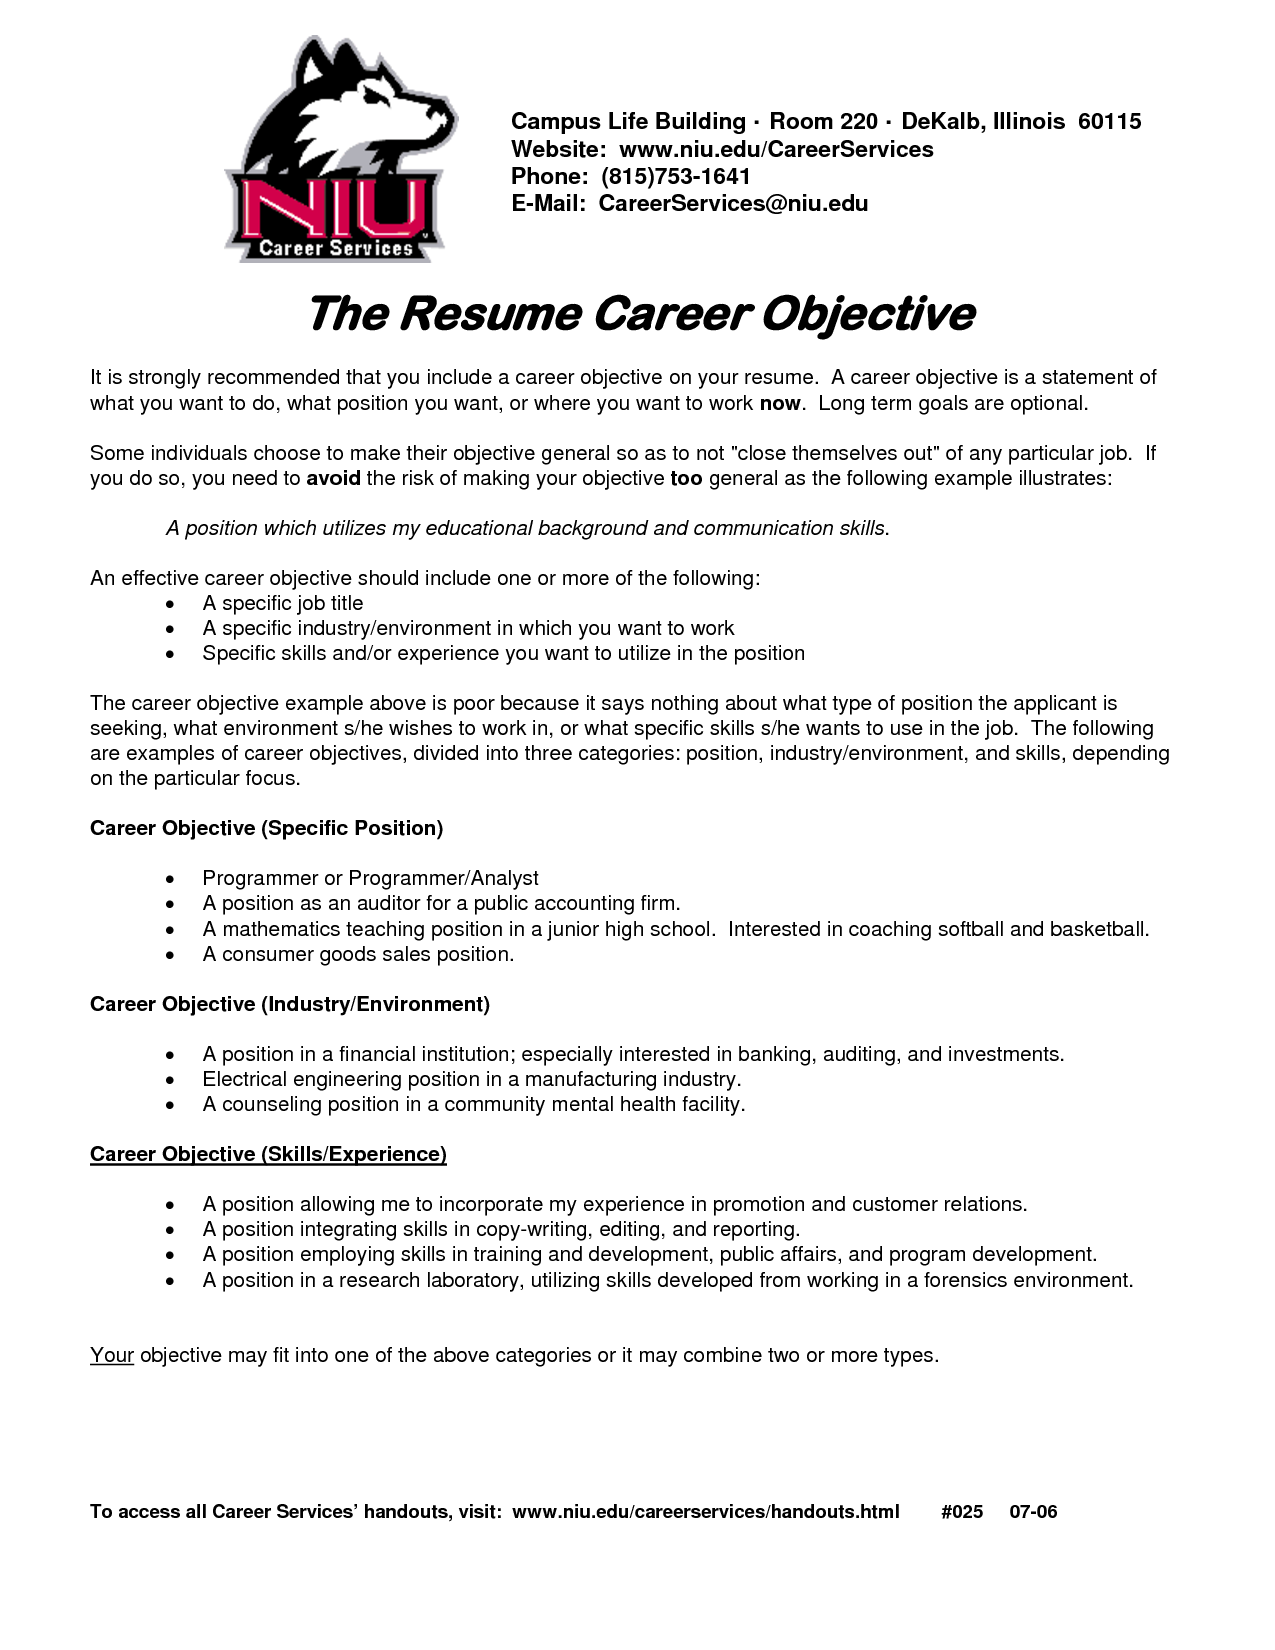 Customer Service Objective For Resume Httpswwwgooglesearchqobjective Resume  Resume